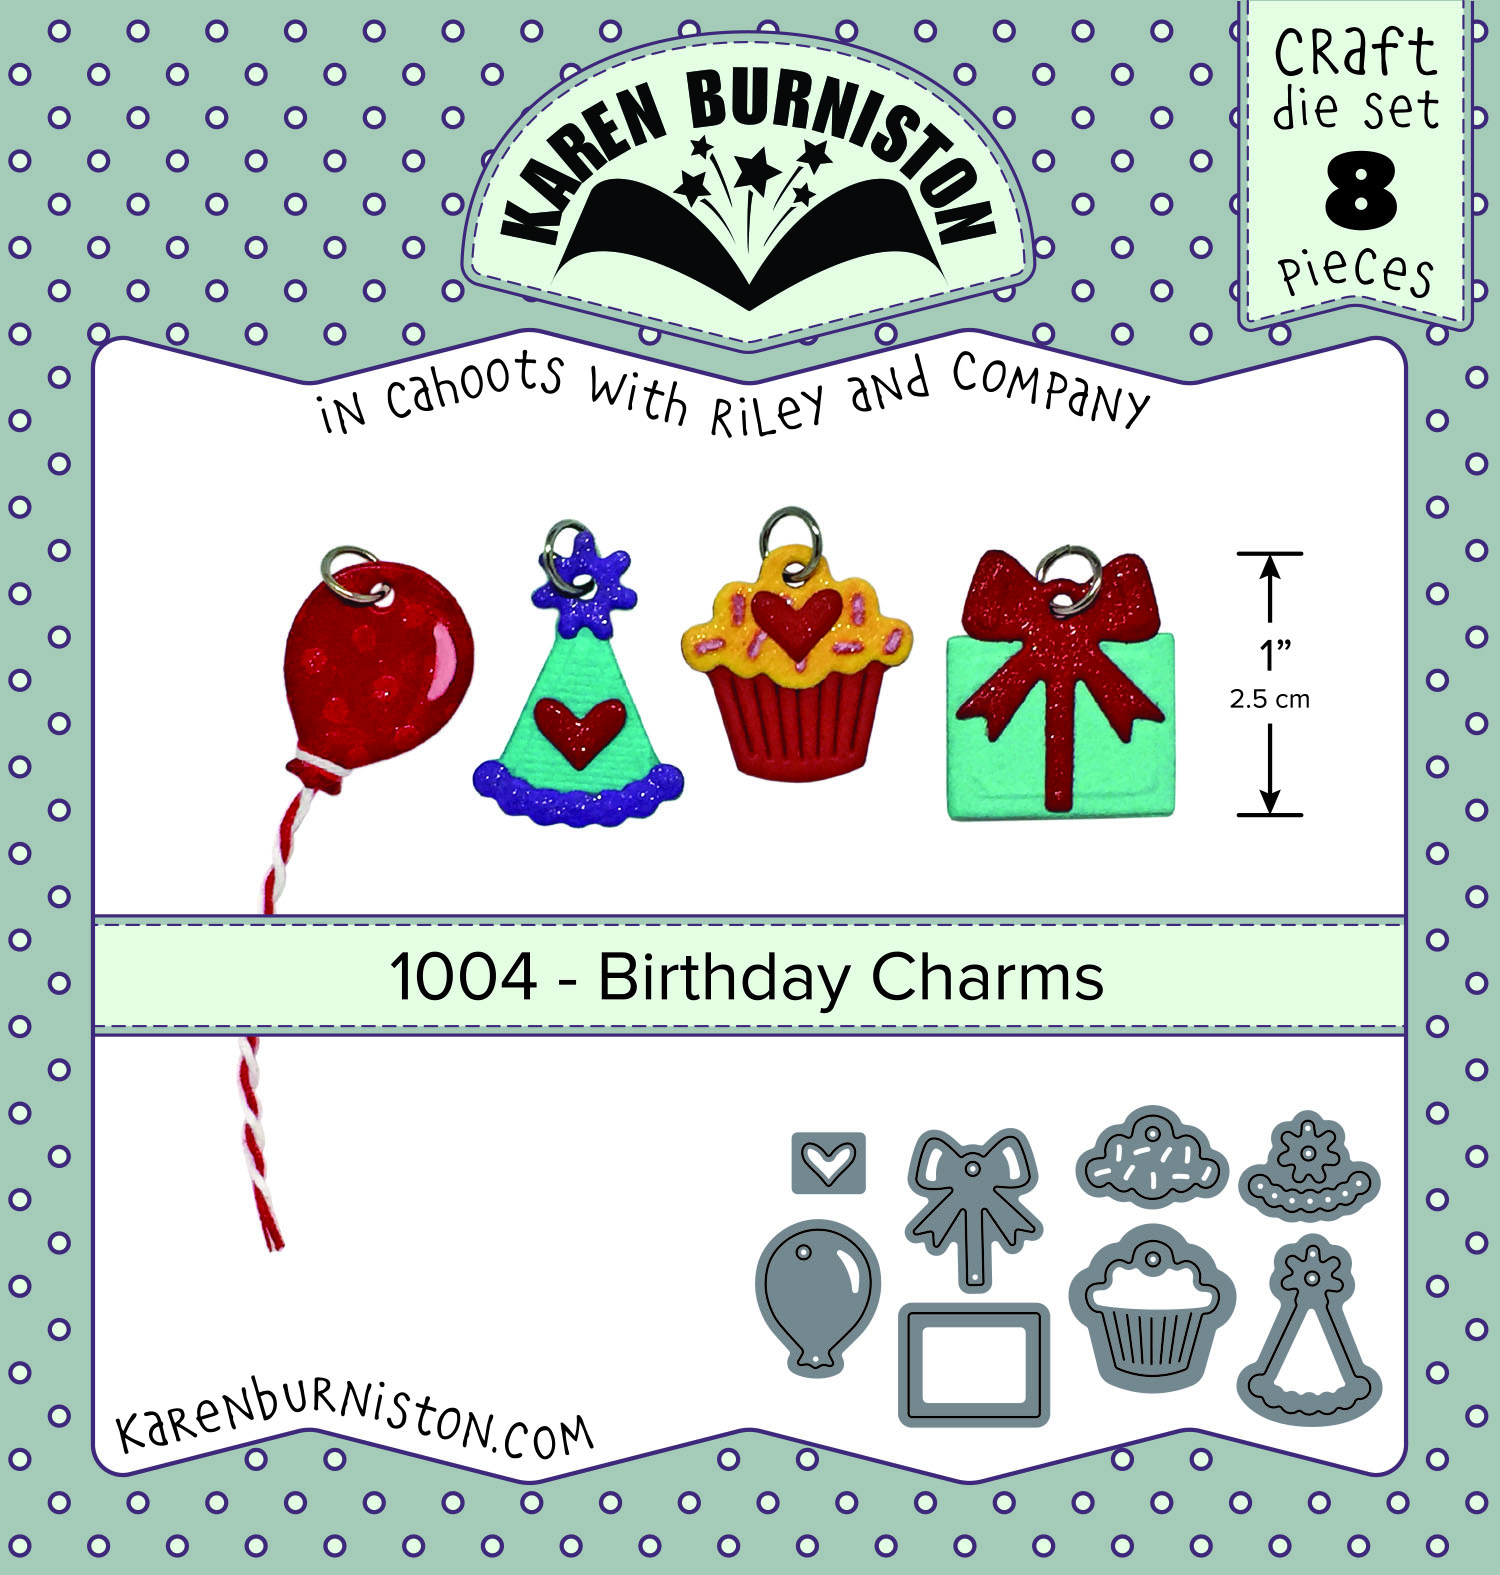 1004-birthdaycharms.jpg